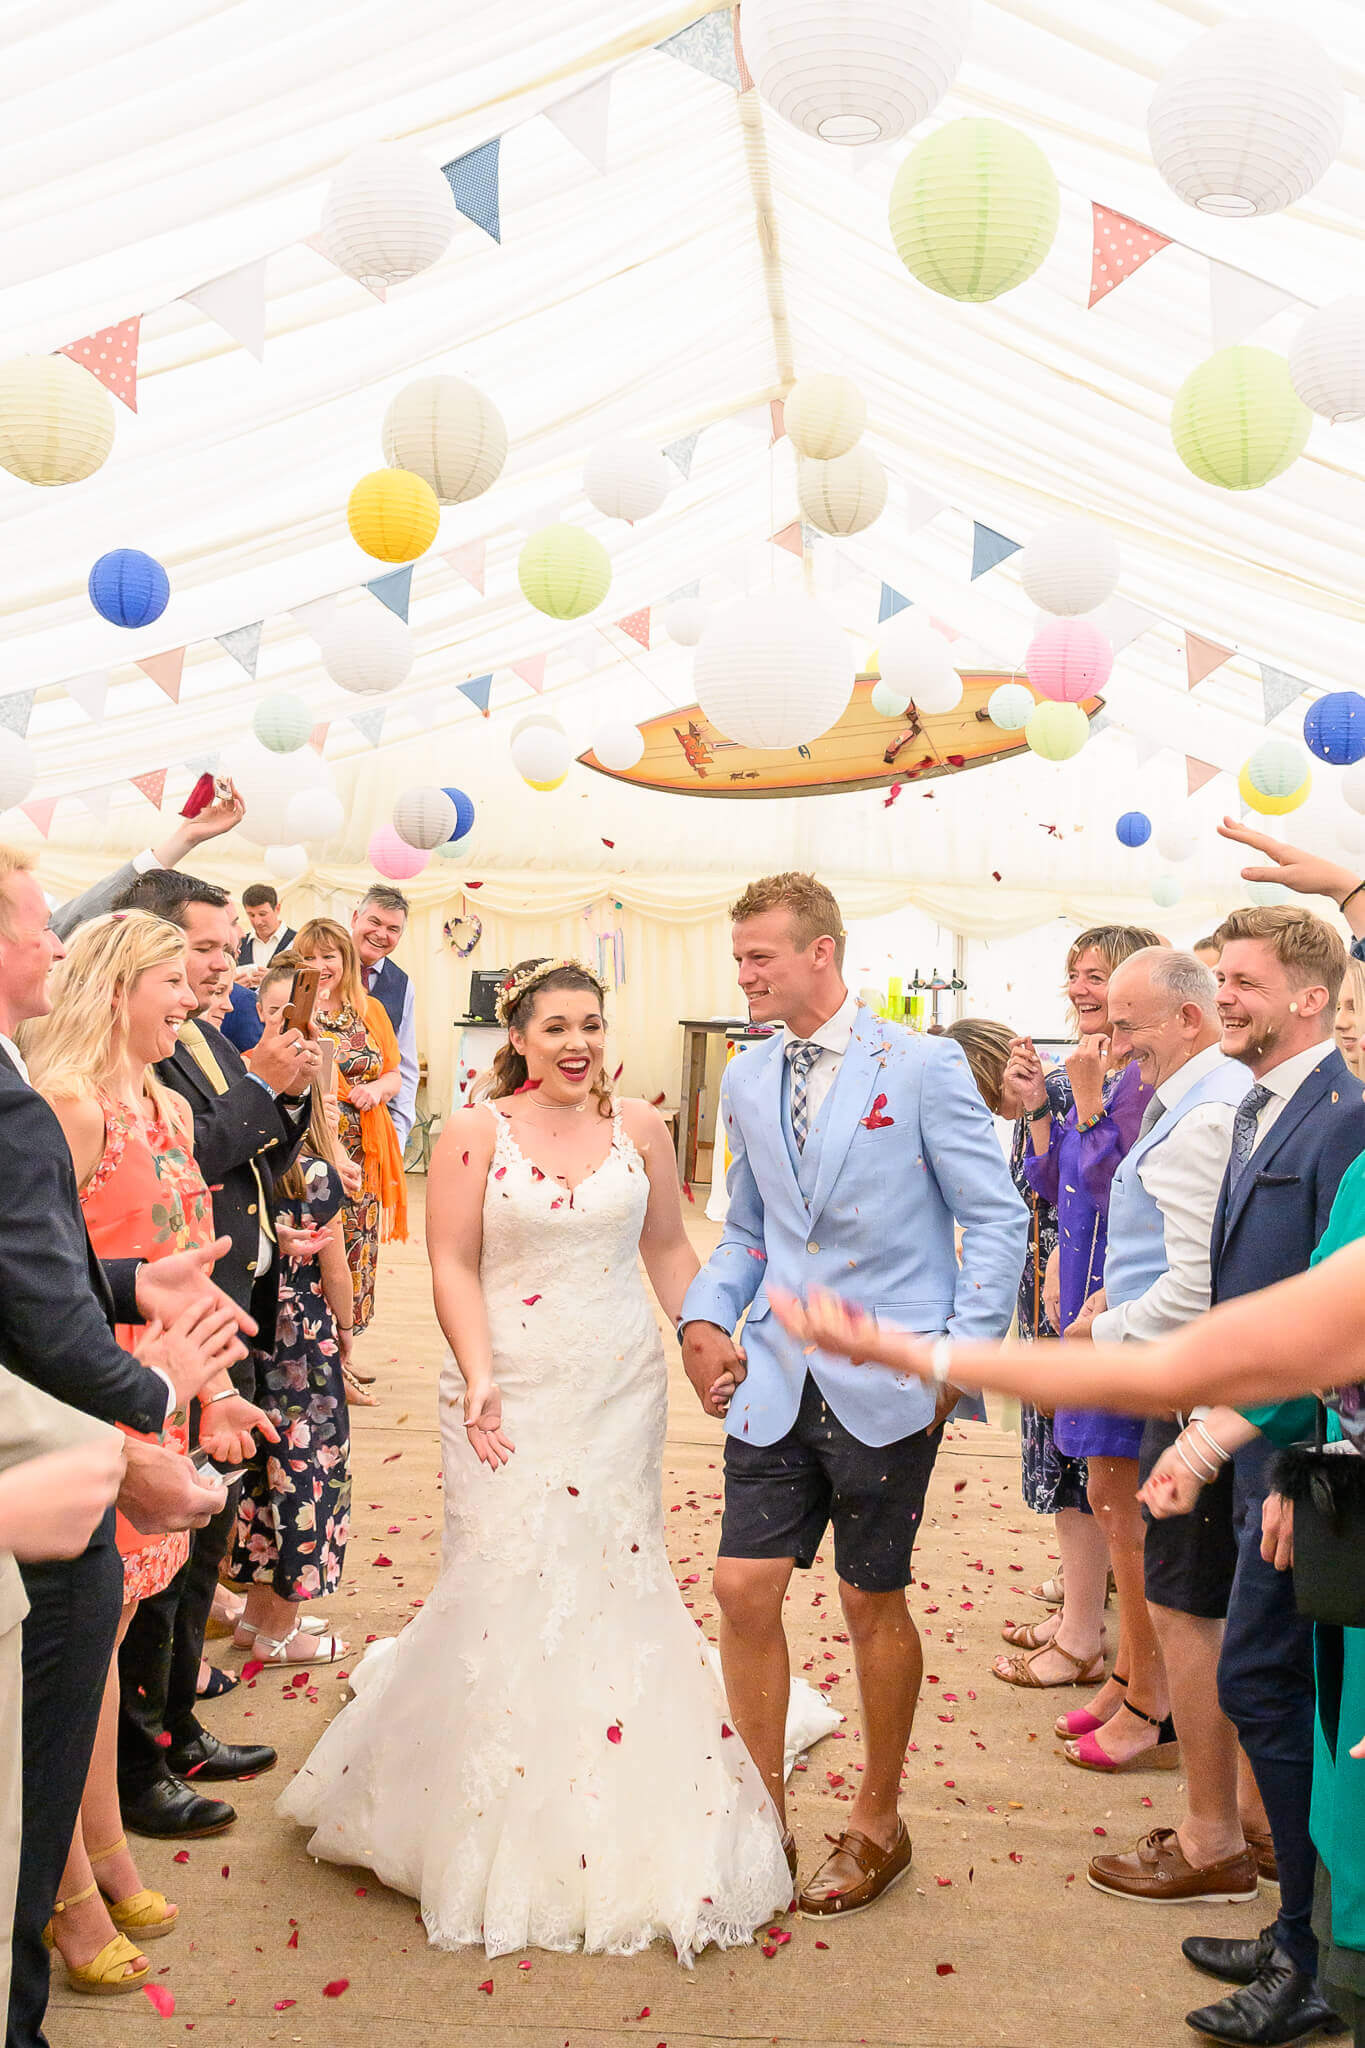 Bride and groom Confetti photo by Ryan Hewett Photography